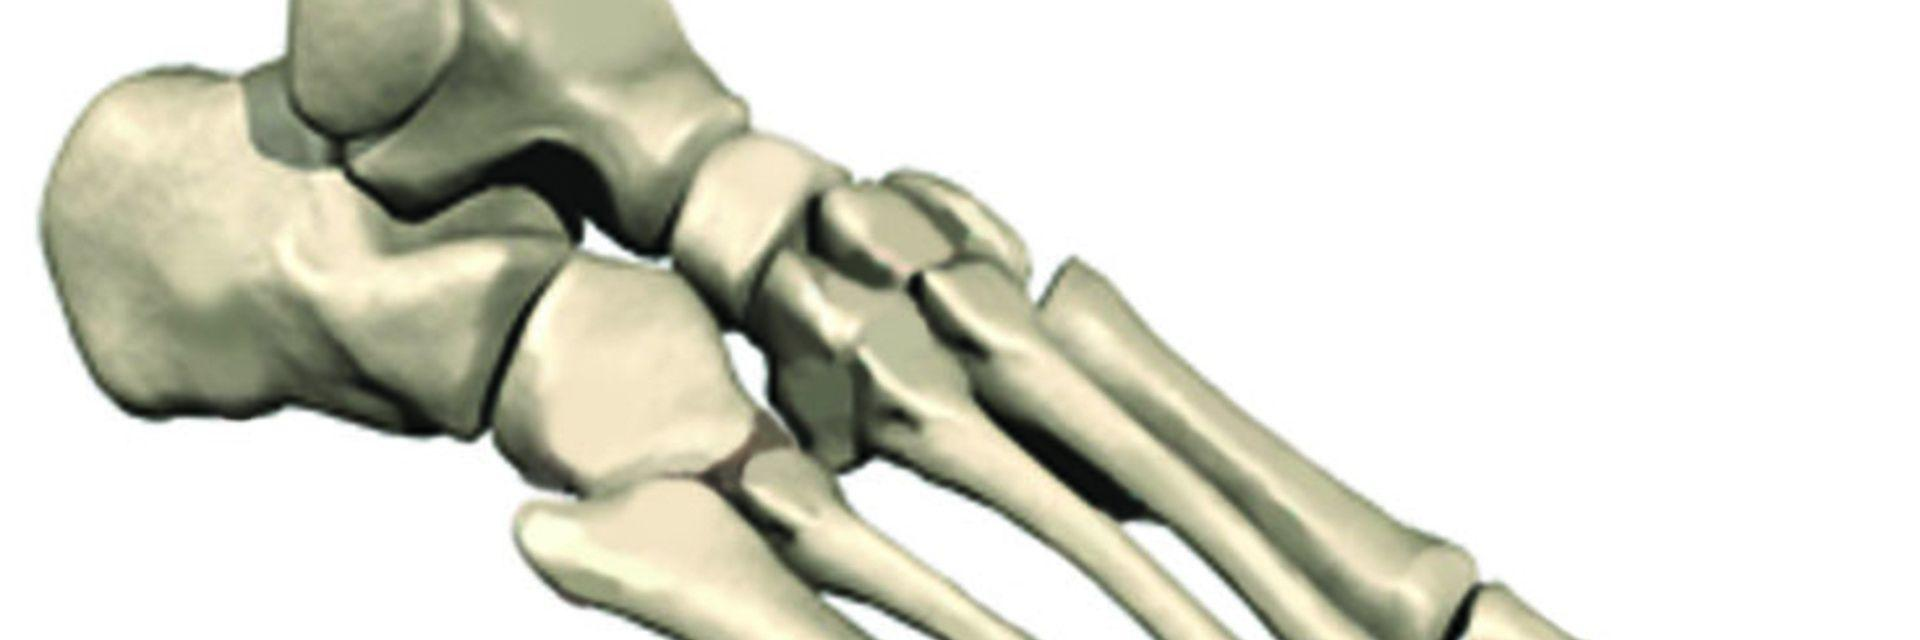 Are You Looking For Digital Deformities Physicians in South ...